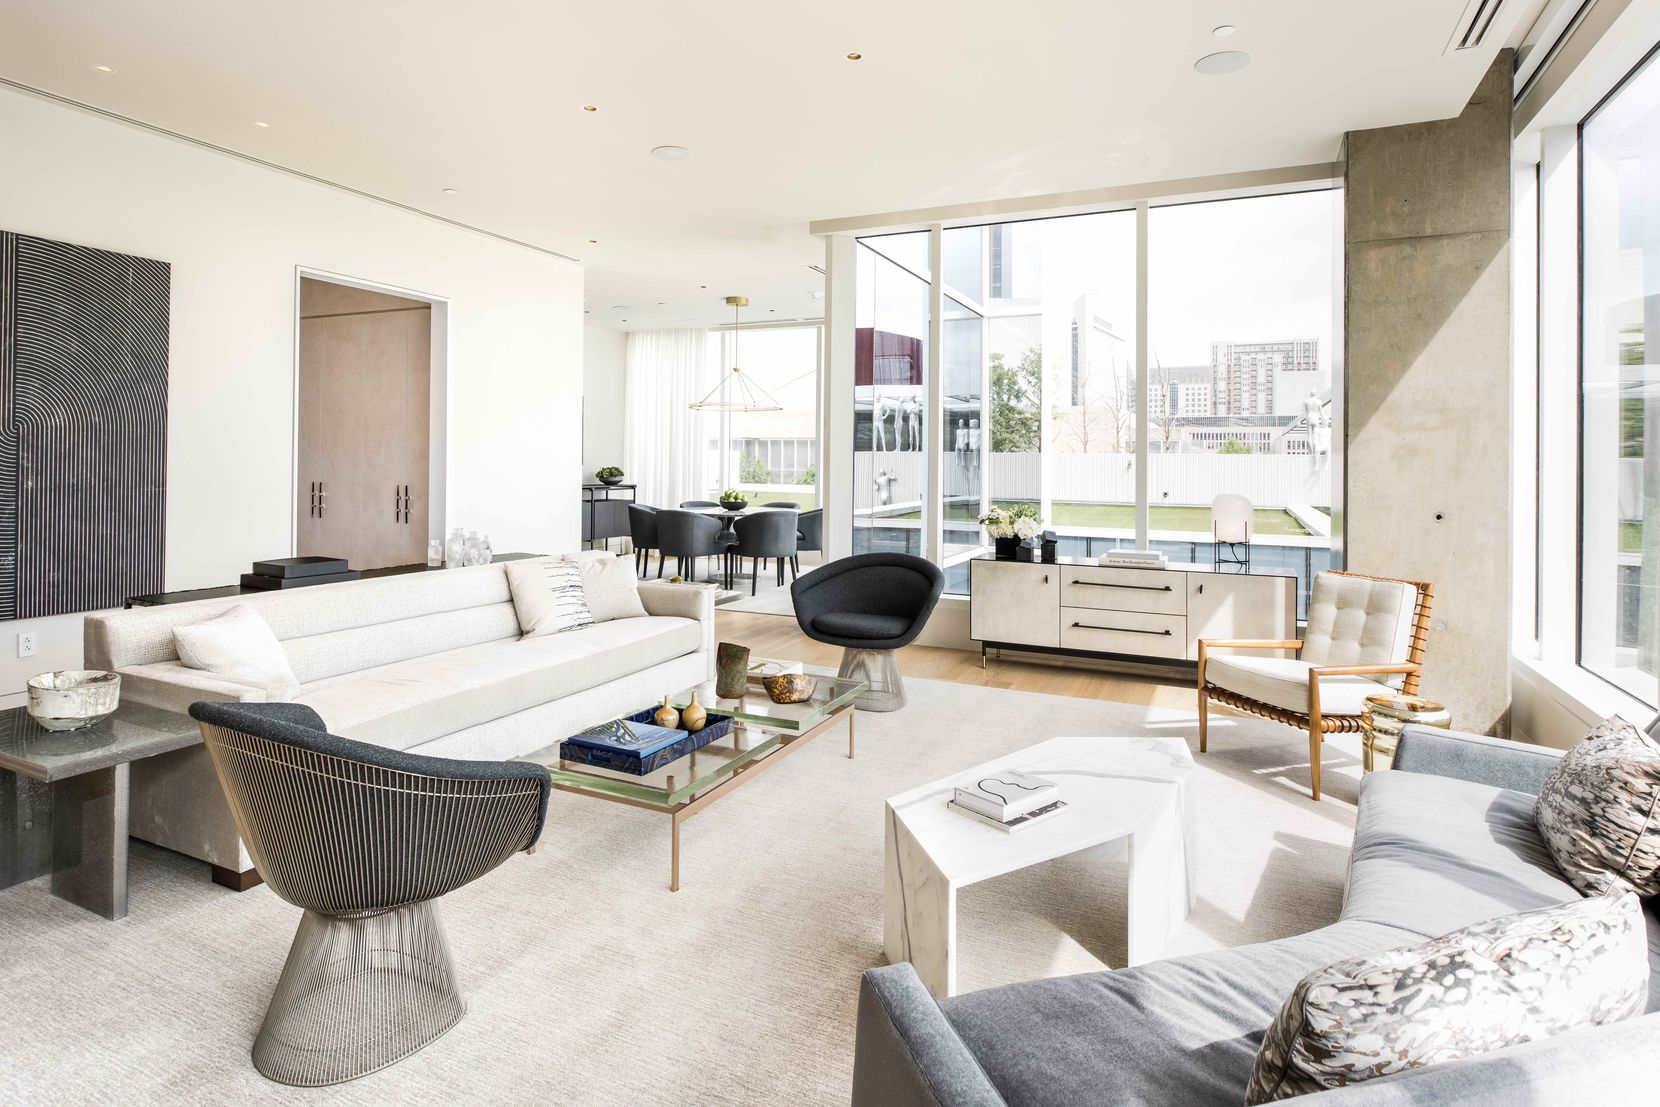 The model unit for the Hall Arts Residences condo high-rise was done by Dallas designer Emily Summers.